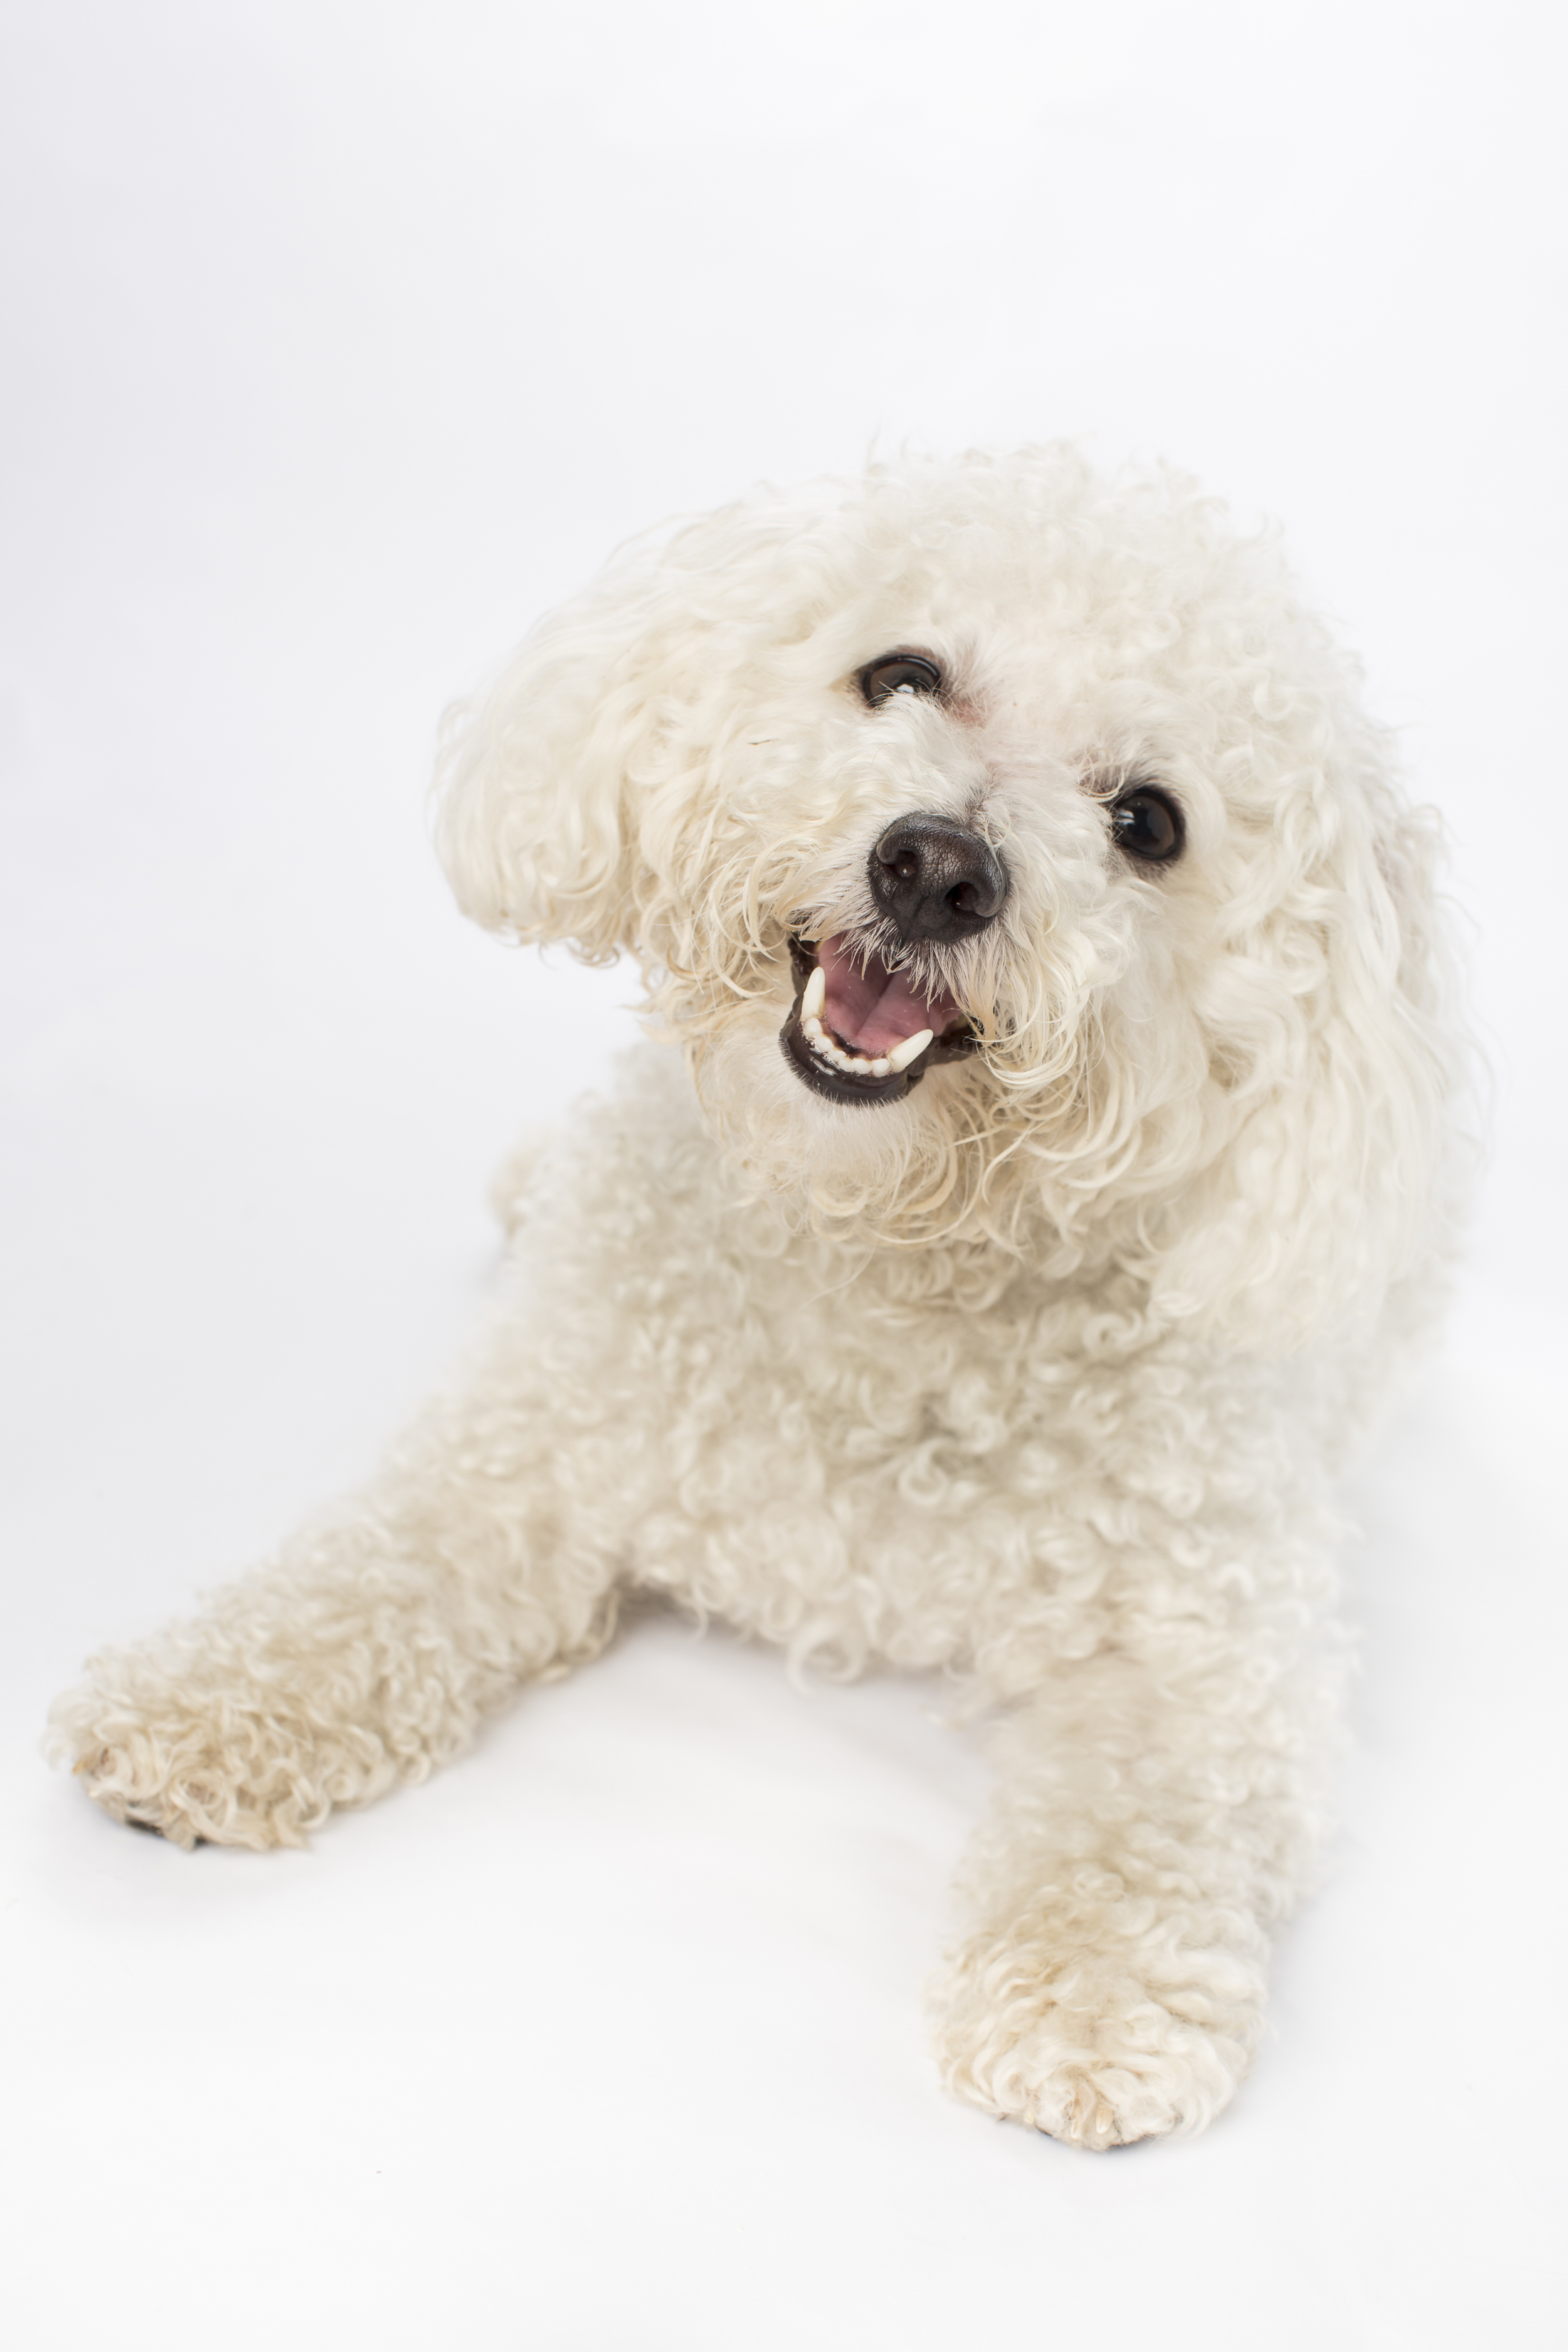 16 Happy white poodle puppy dog studio pet photography session on white.jpg